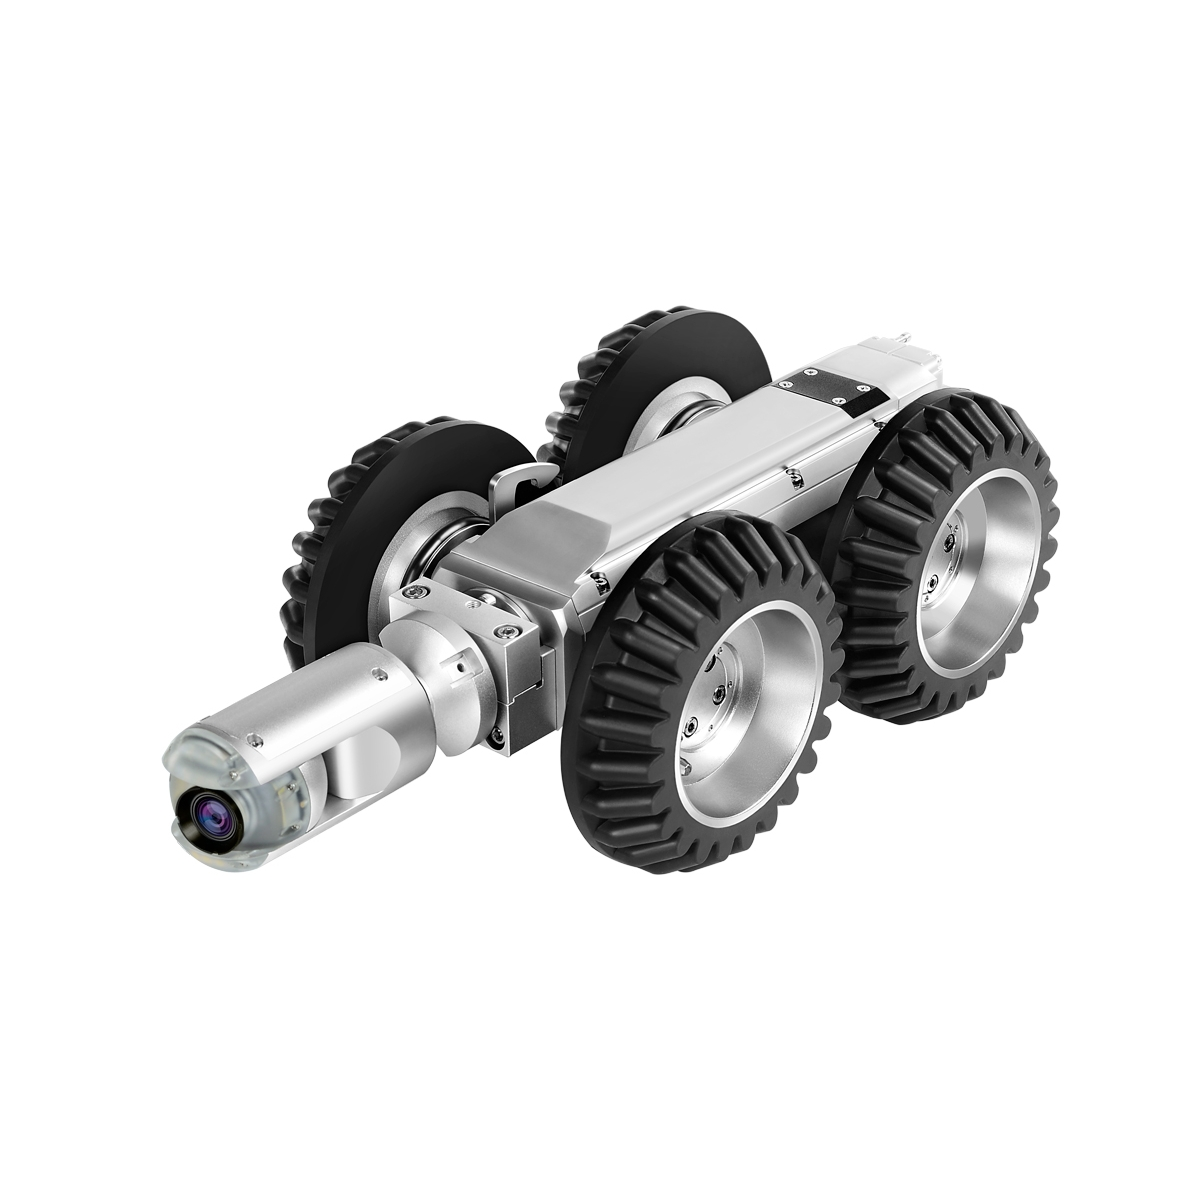 S100 - PIPEILINE ROBOTICS CRAWLER